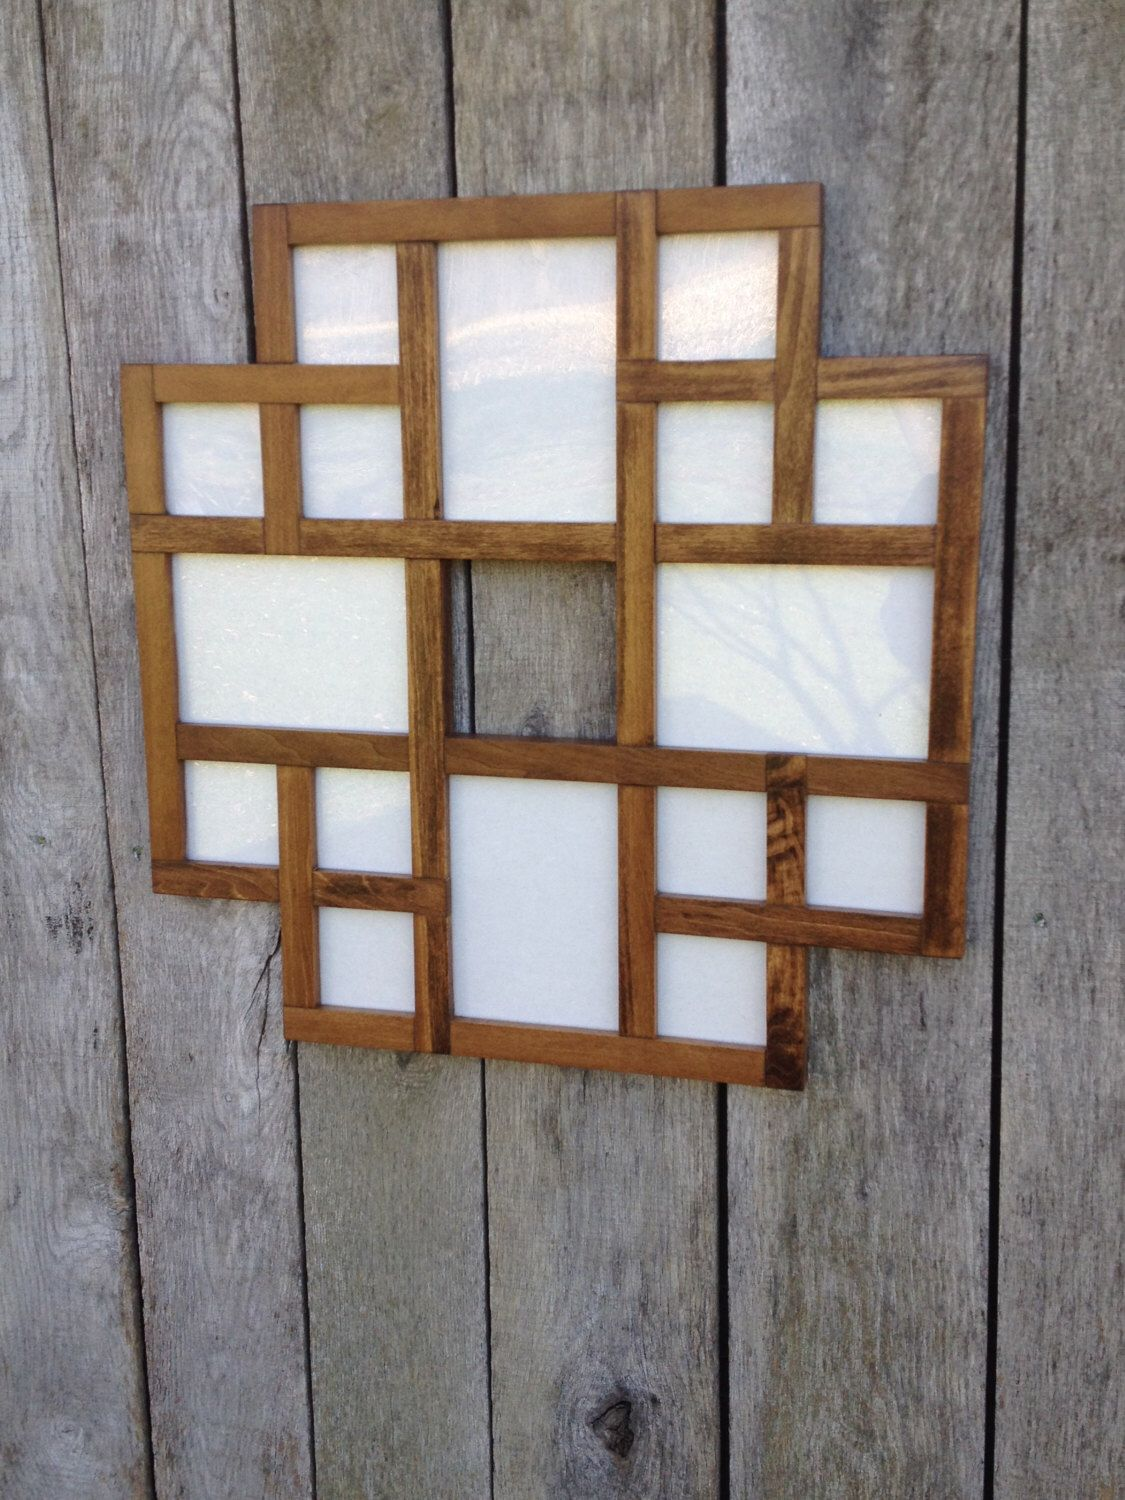 Collage frame multiple openings frame photo collage frame collage frame multiple openings frame photo collage frame multiple pictures frame collage jeuxipadfo Gallery